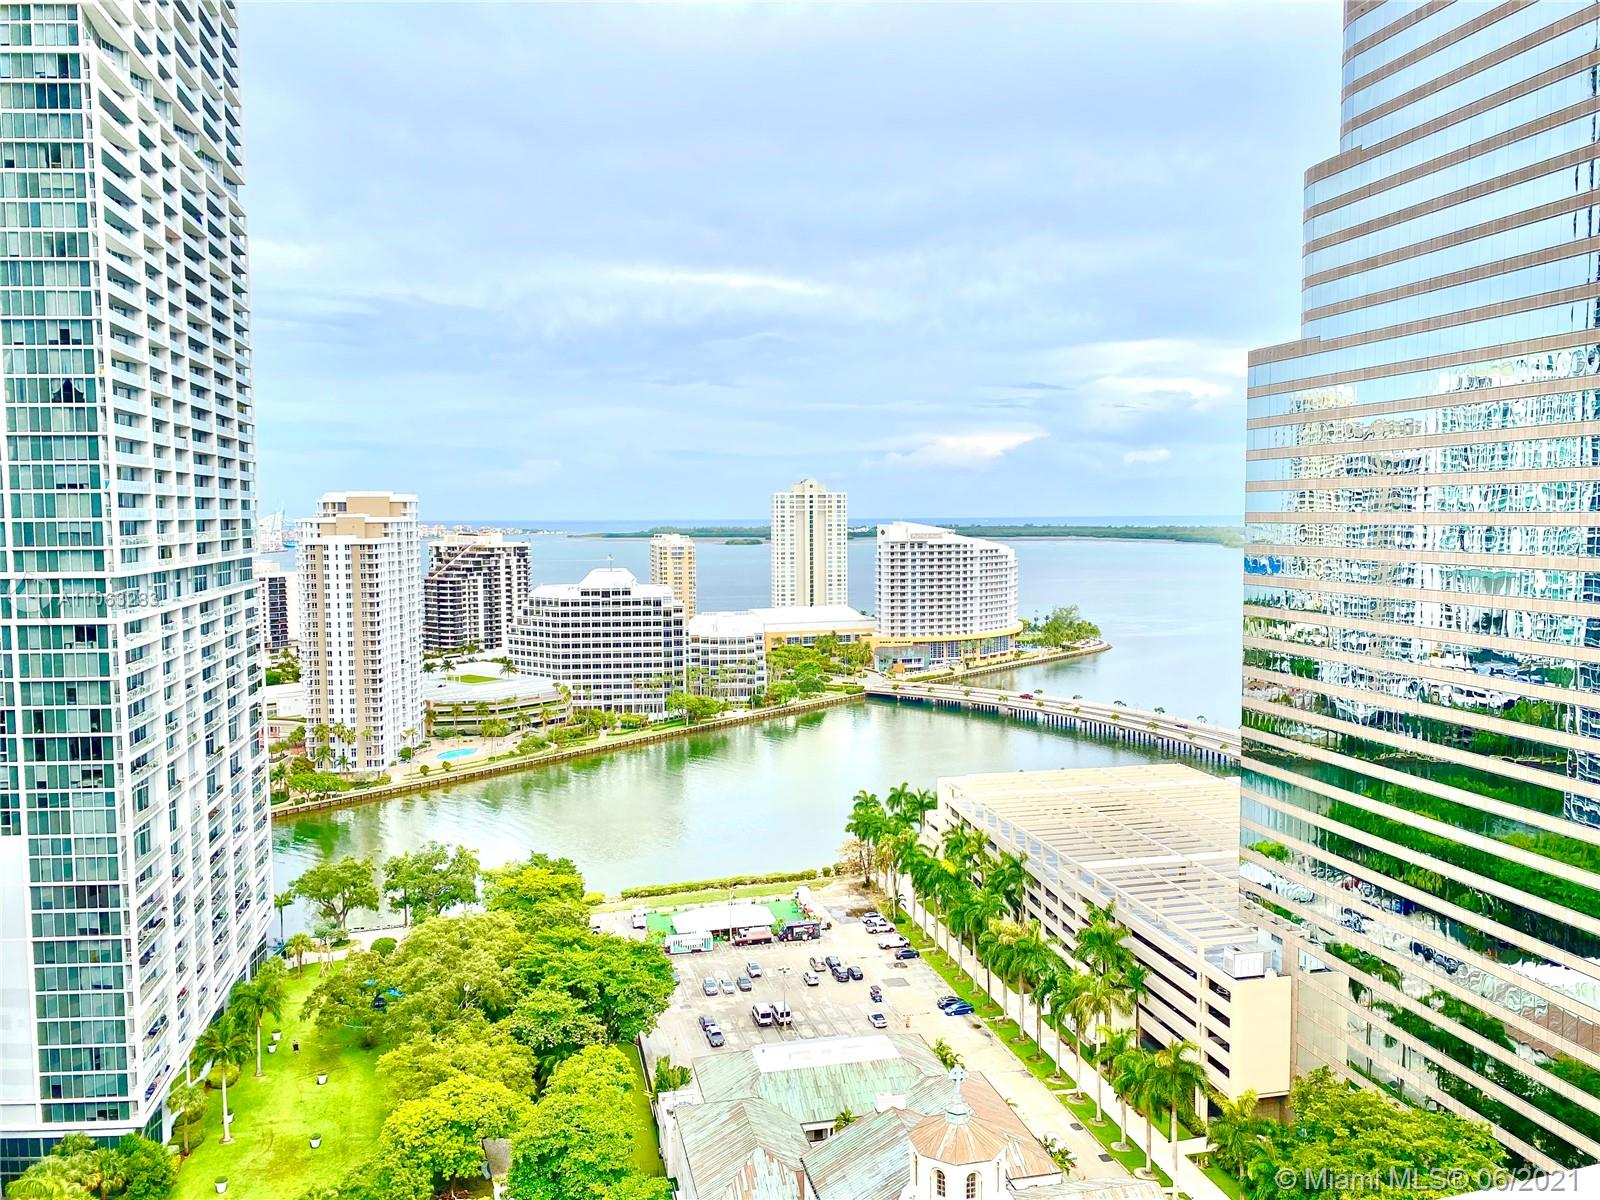 CORNER UNIT on the best line of 500 Brickell EAST Tower overlooking the bay and Brickell Key. Centrally located in Brickell, walking distance to the best restaurants, bars and Brickell City Center. Dont miss this opportunity to see this unit with custom doors, marble floors and custom cabinetry!